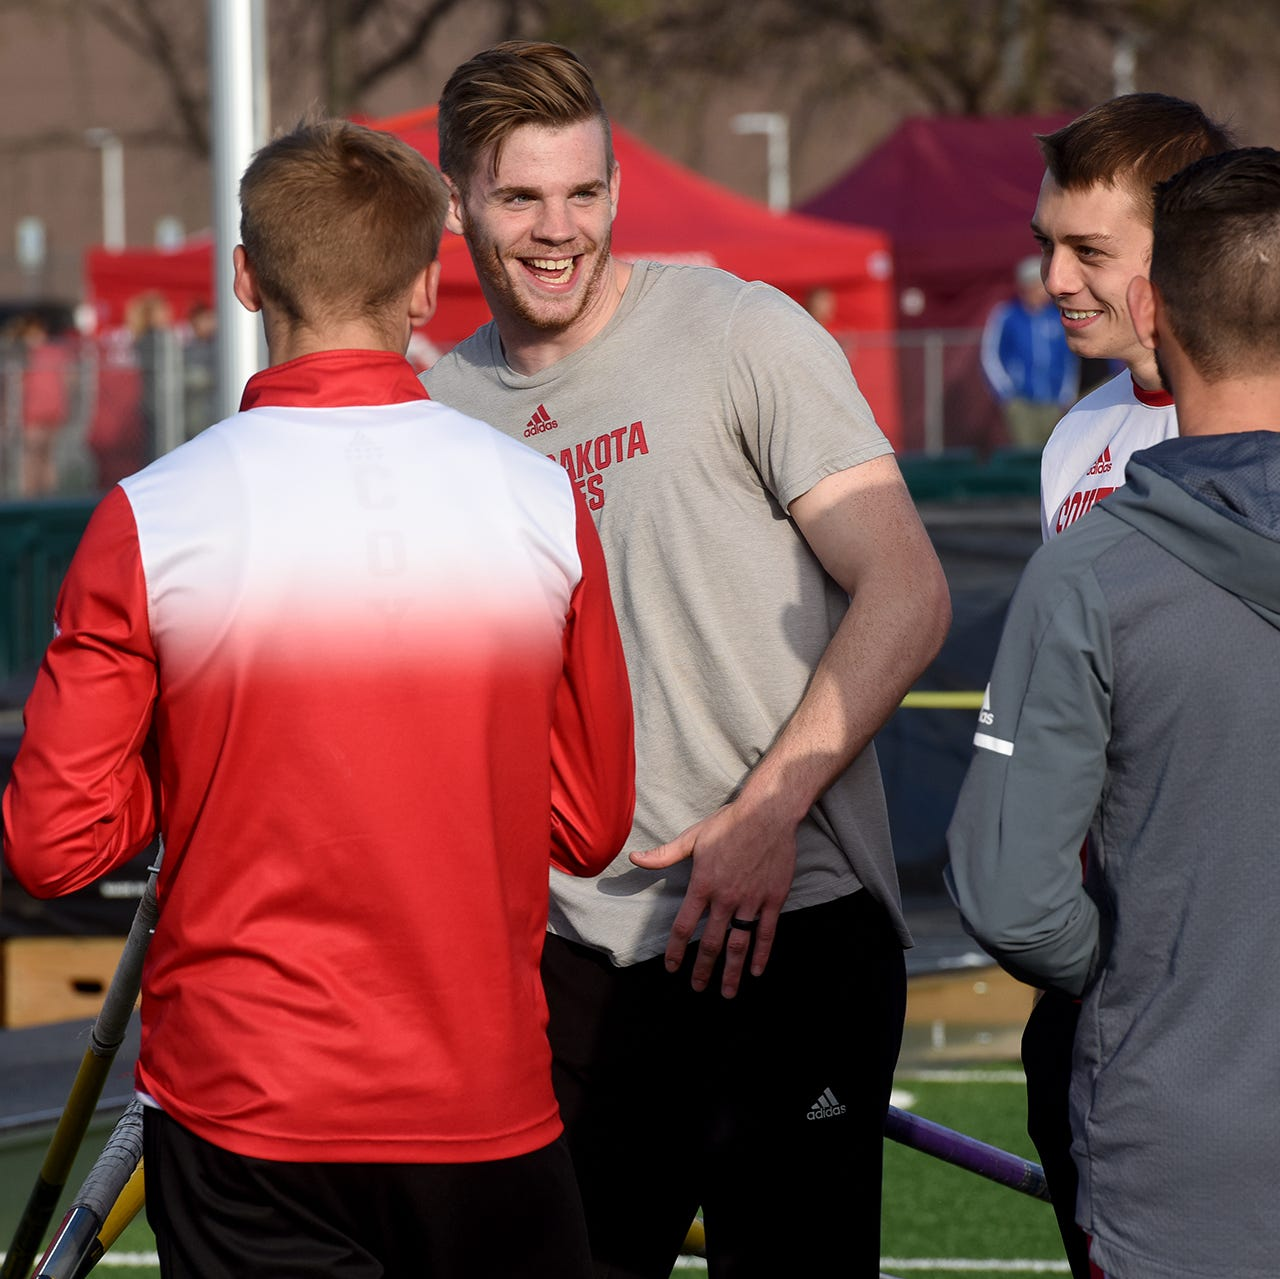 Dakota Relays: USD Coyotes, University of Mary win big in college division